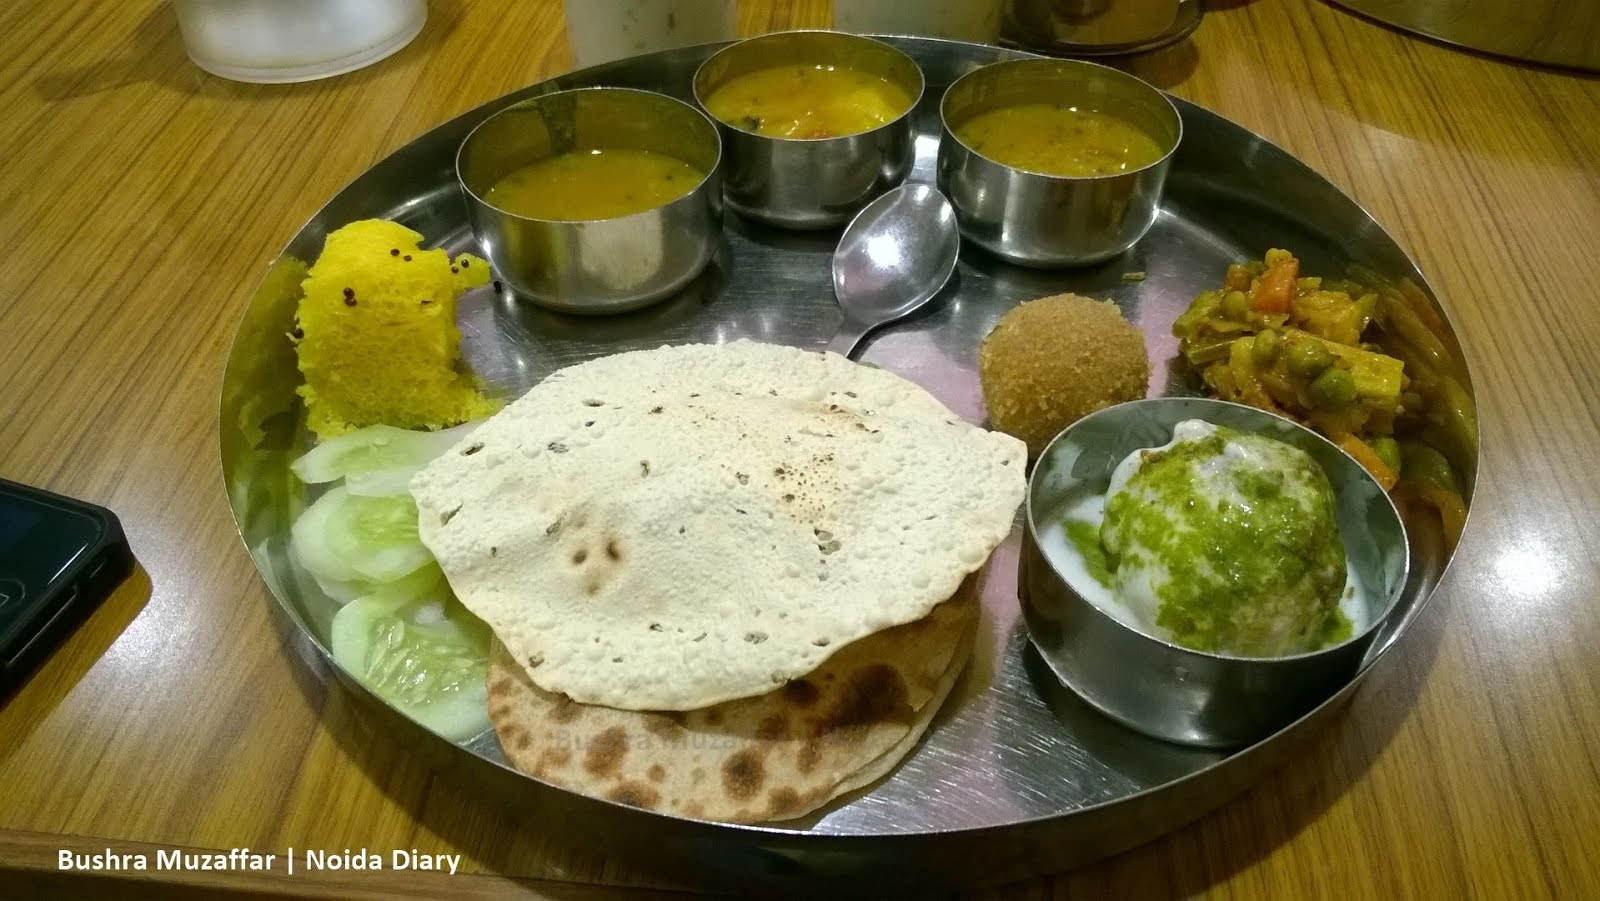 Noida diary authentic gujarati food at gujarat bhawan delhi for Authentic cuisine